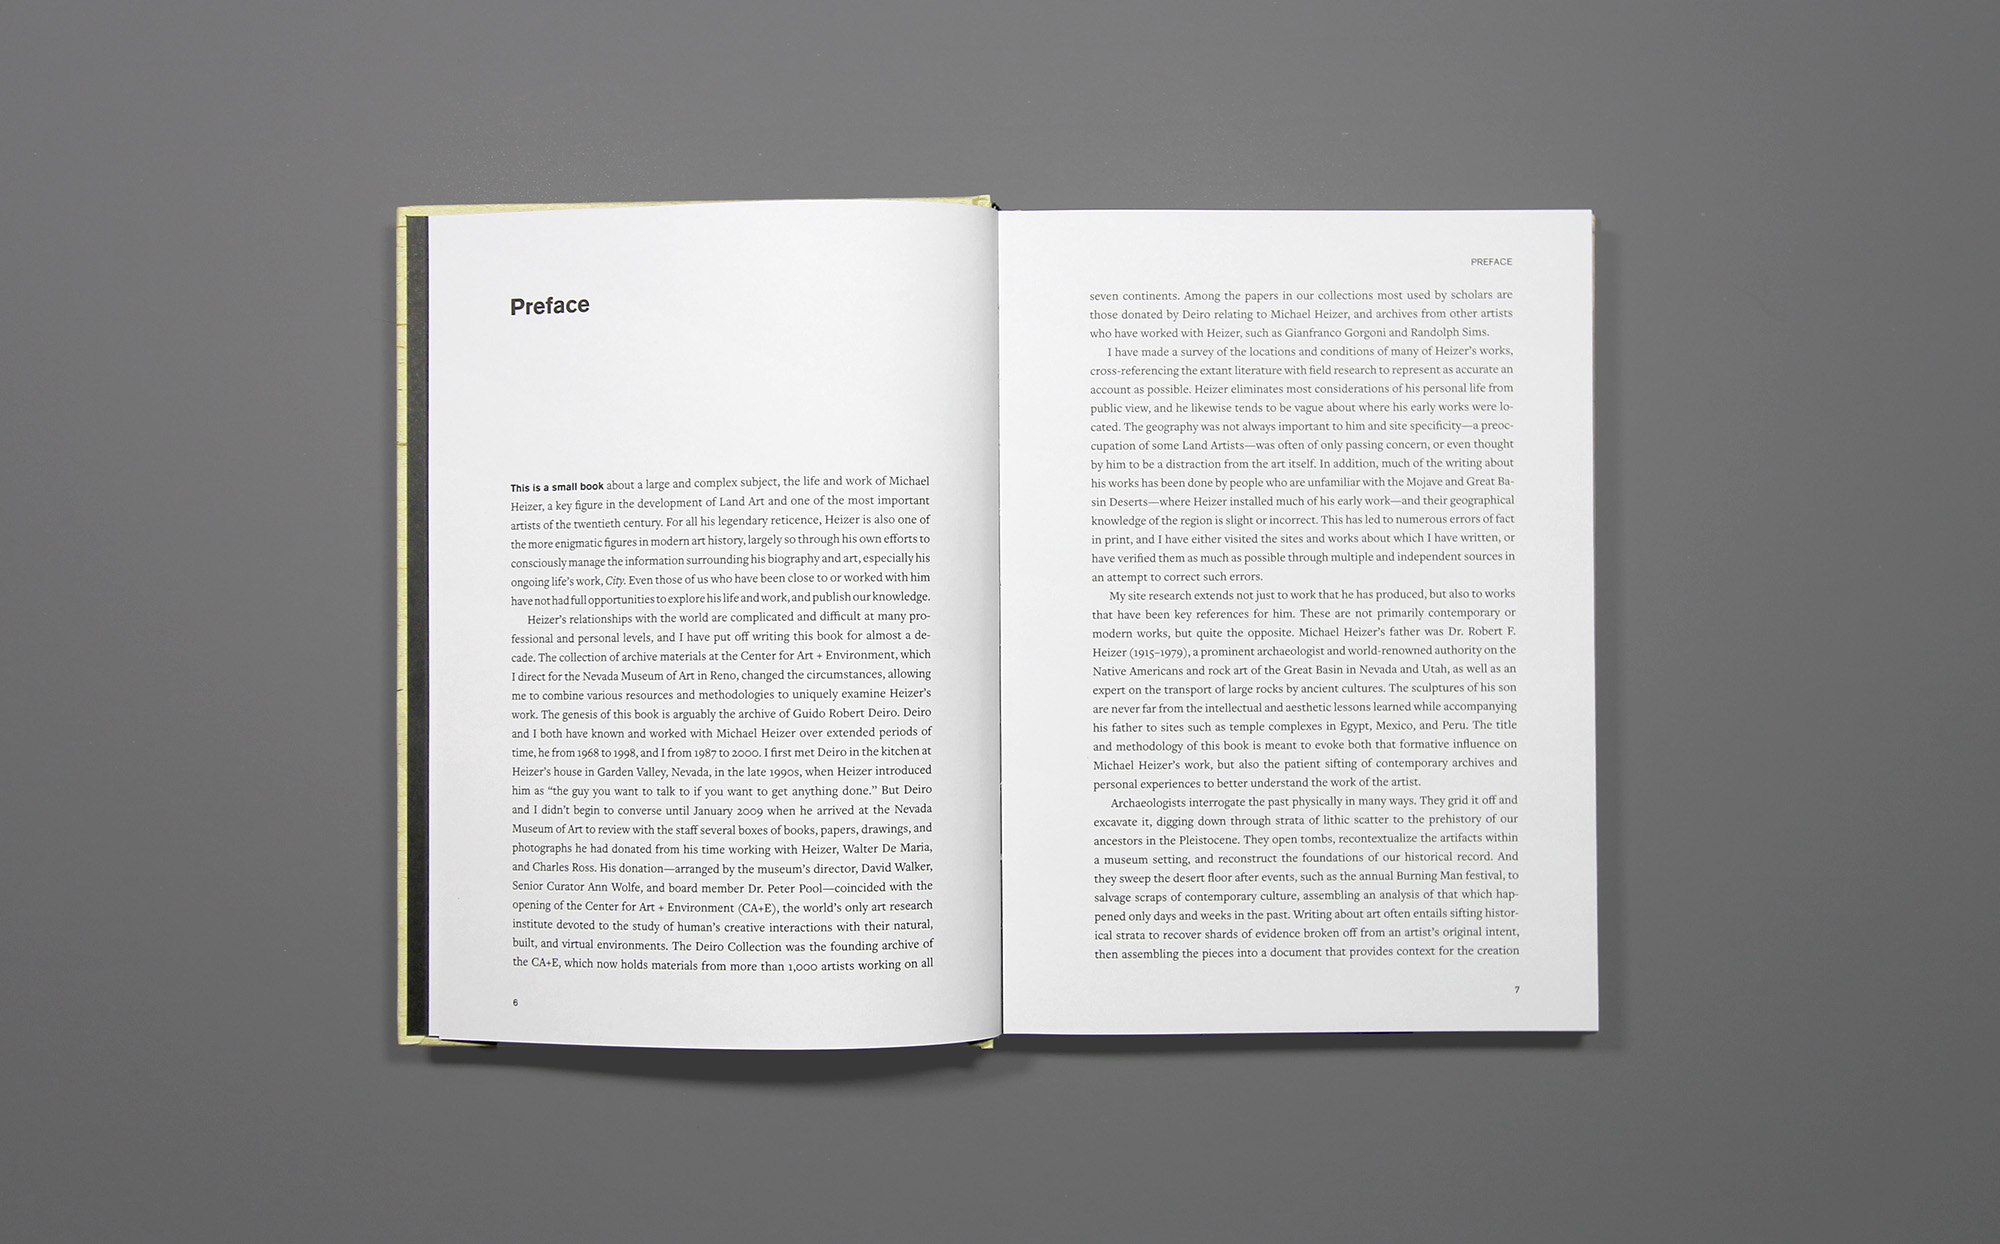 Heizer-book-spread-7-hazen